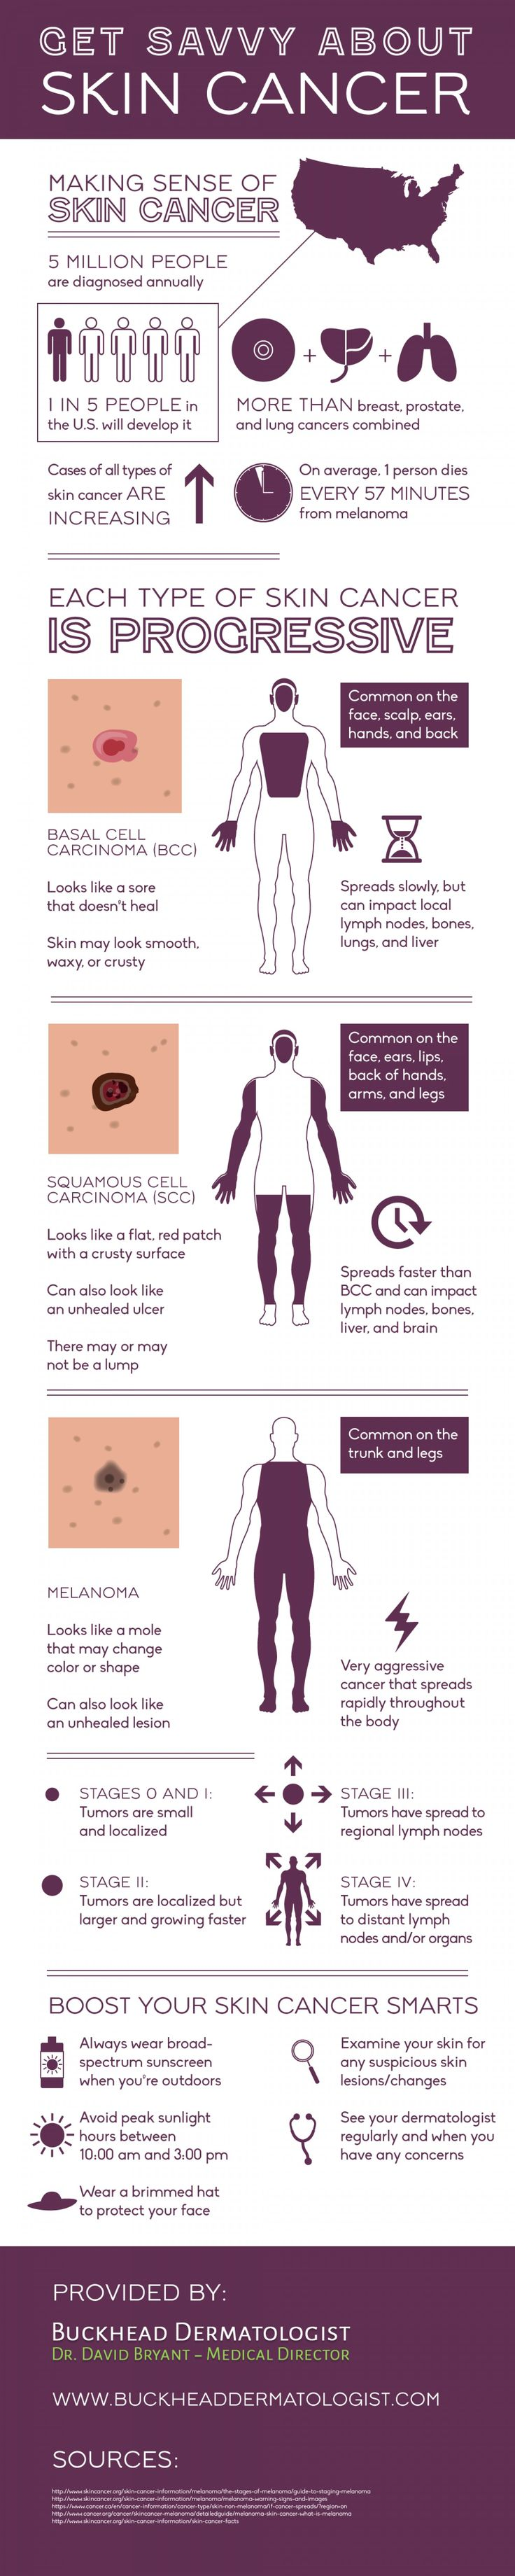 Get Savvy about Skin Cancer --shared by BrittSE on May 30, 2015 - See more at: http://visual.ly/get-savvy-about-skin-cancer#sthash.OKHmdqXh.dpuf